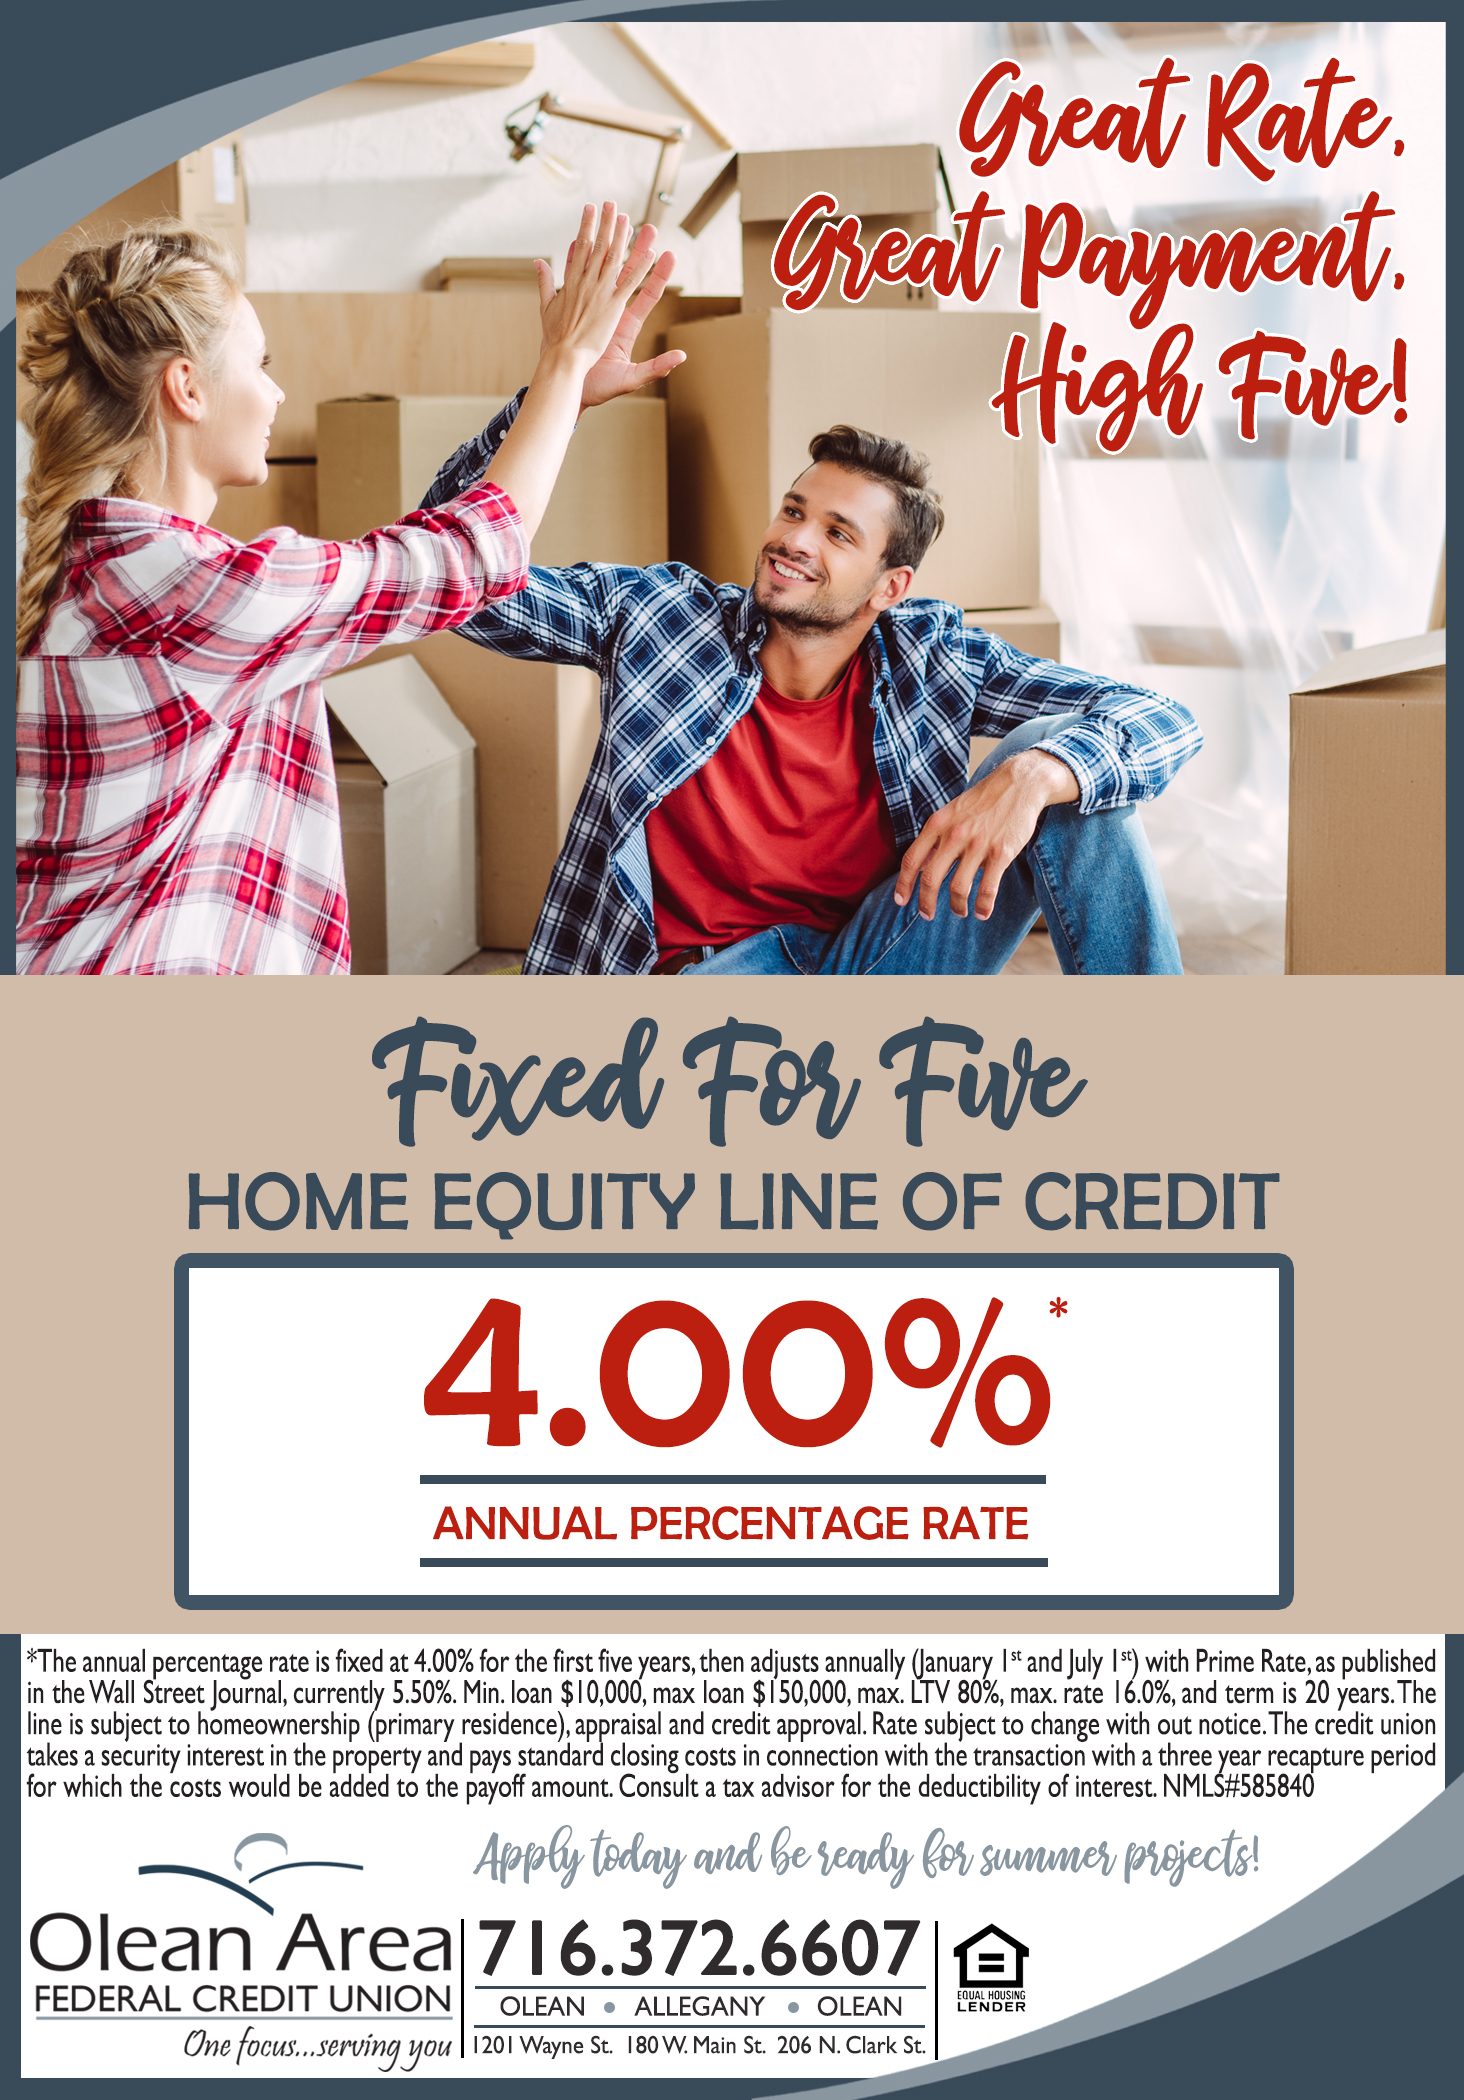 Fixed For Five Home Equity Line Ad